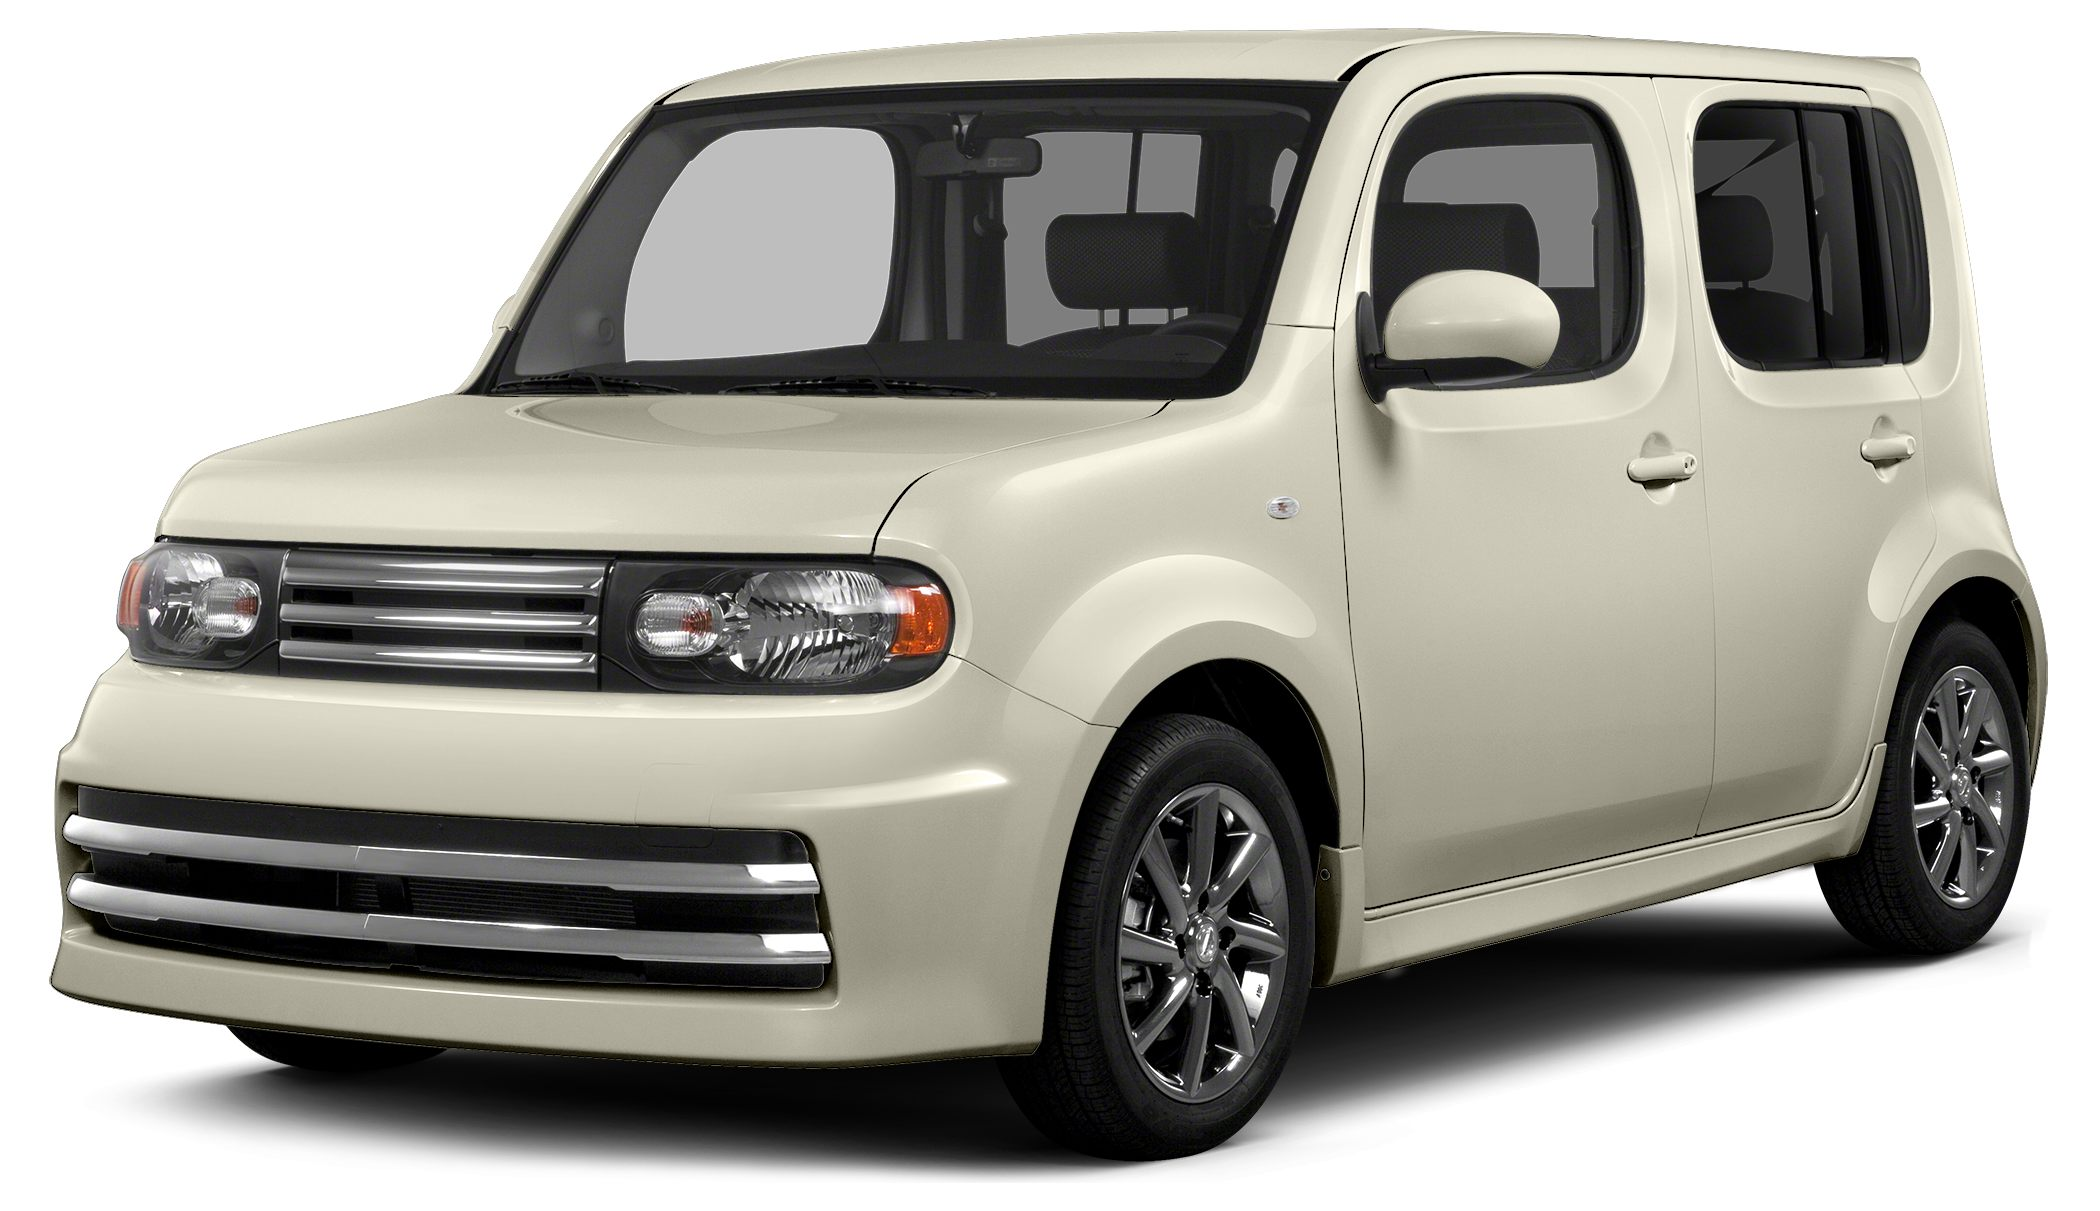 2014 Nissan cube 18 SL Squarely unconventional the Nissan cube is fun modern and unlike anythi